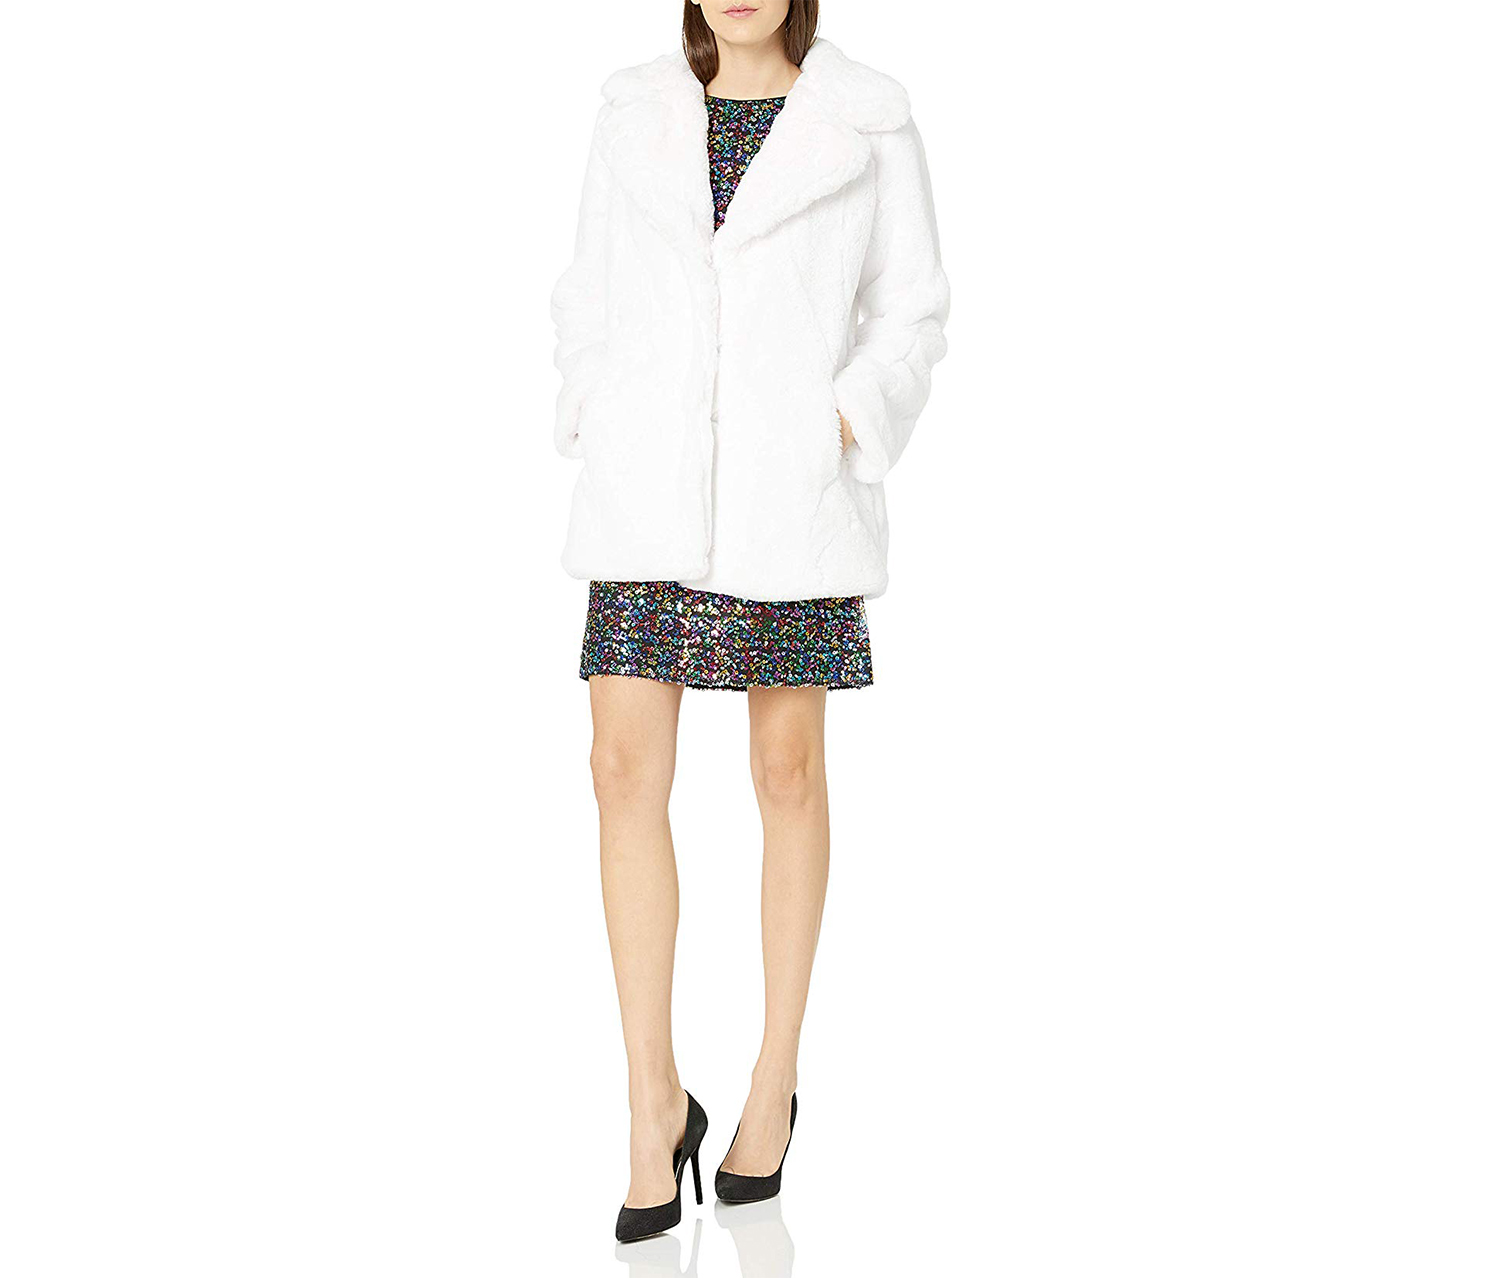 Women's Fashion Outerwear Jacket, White